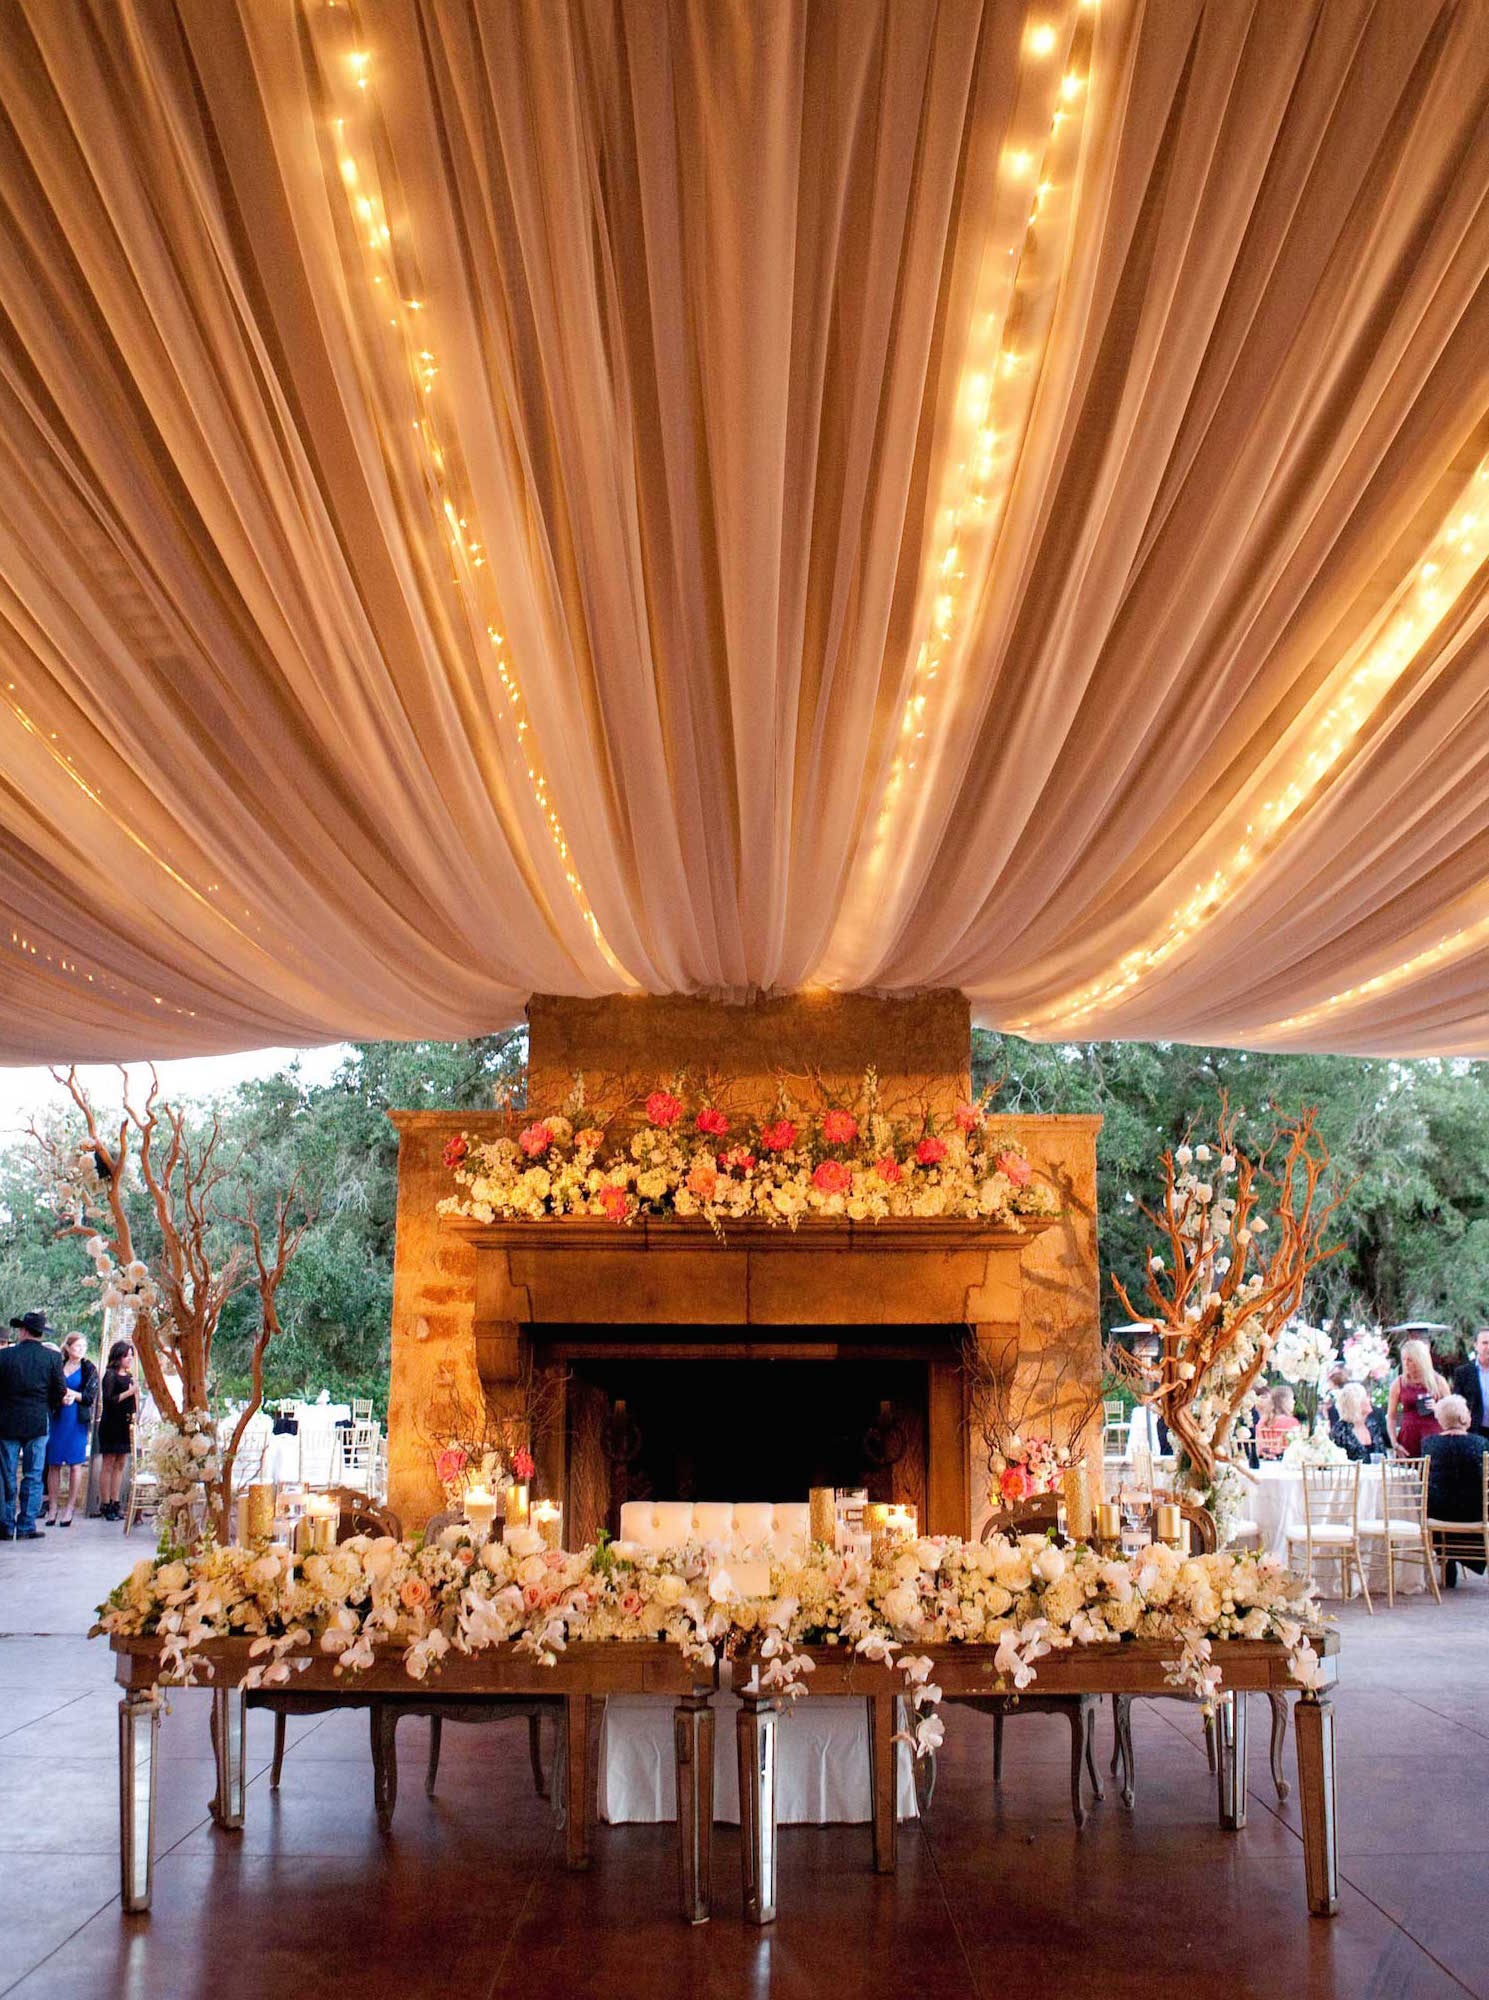 String lights above sweetheart table at wedding